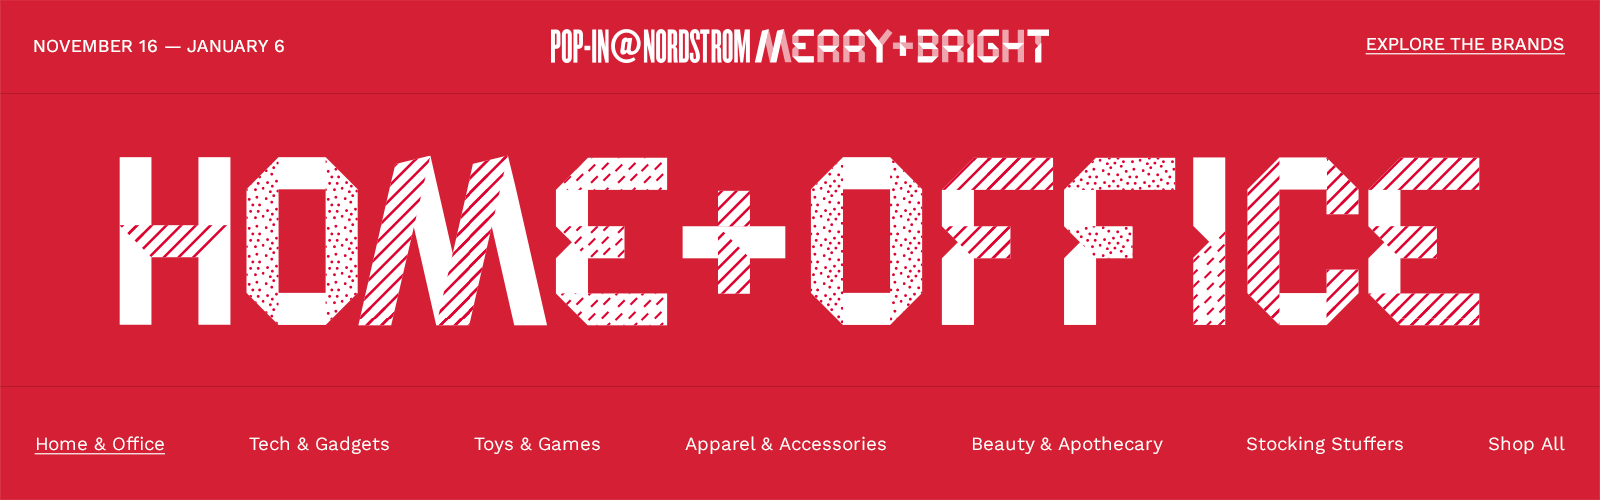 Shop home & office. Pop-In@Nordstrom Merry+Bright. November 16 to January 6.